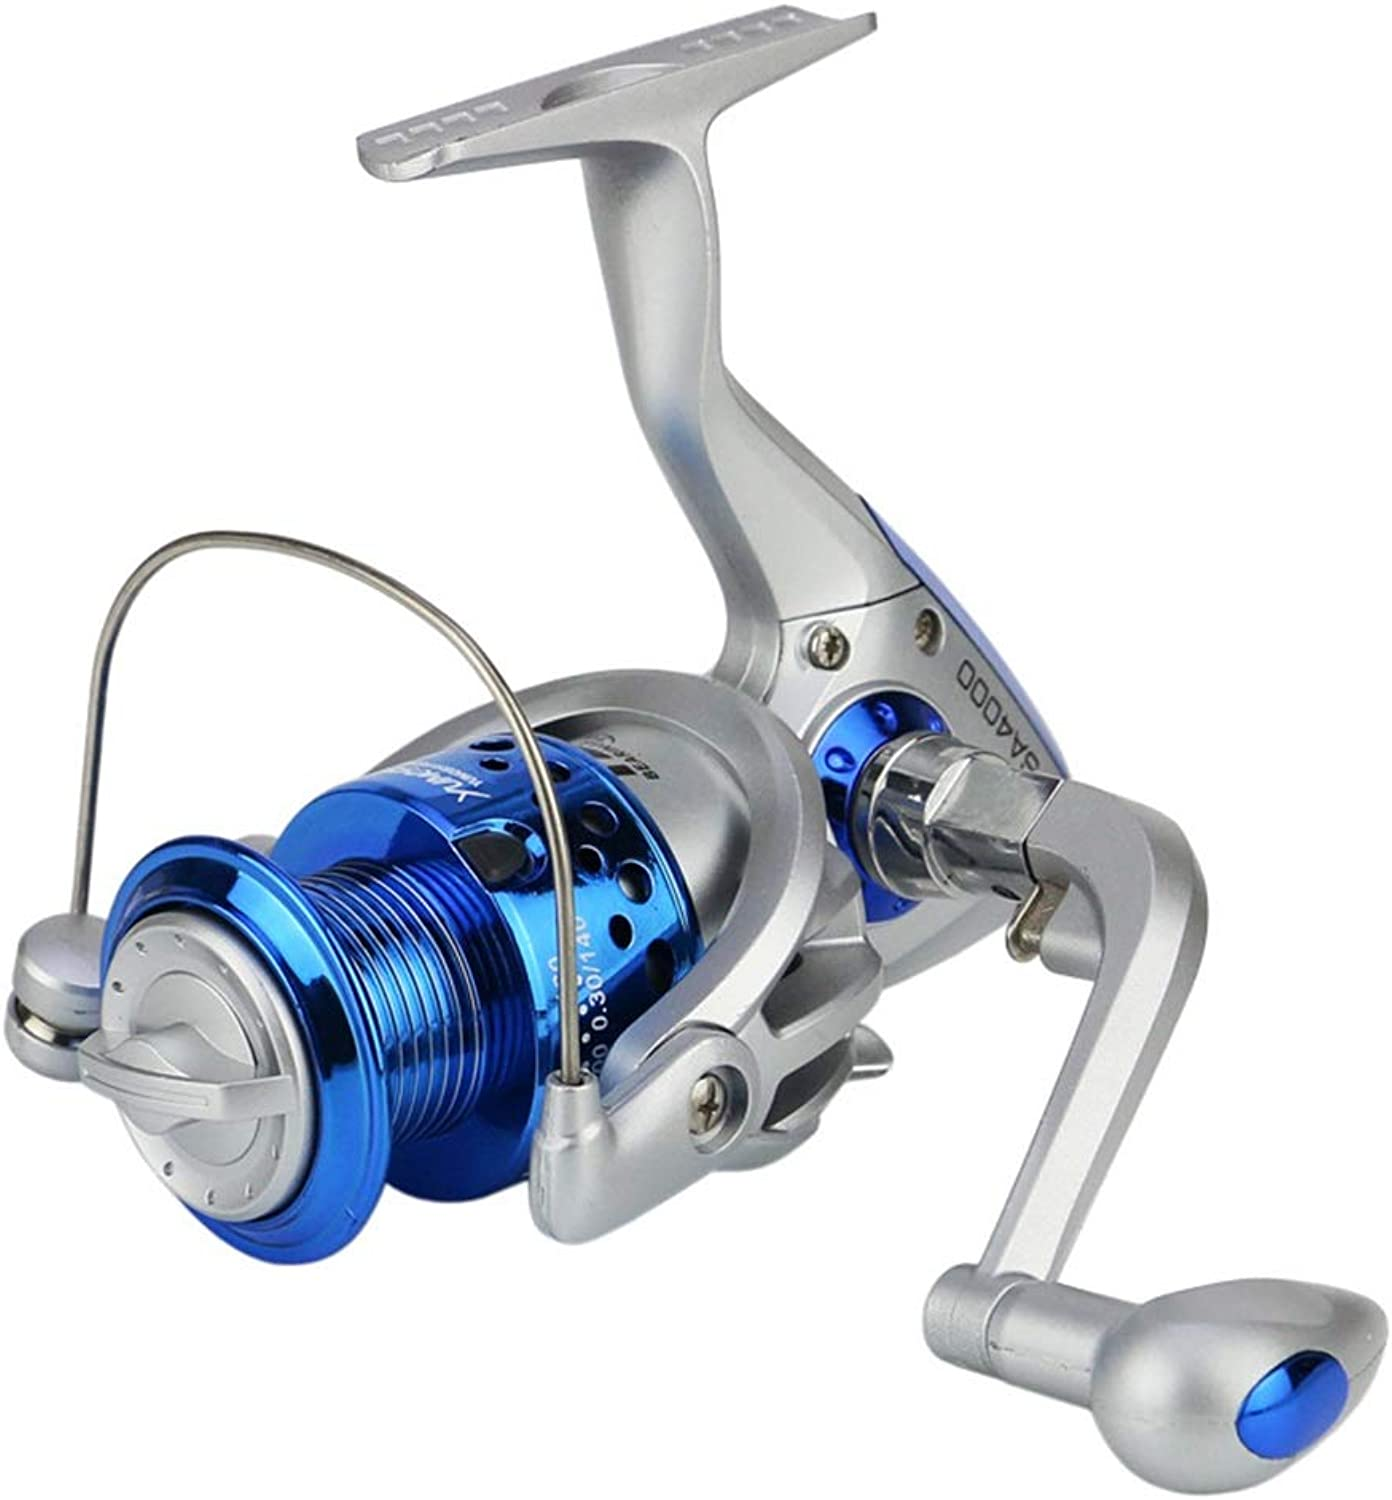 Fishing Wheel 10007000 Fishing Reel Fish Wheel Fish Wheel Fishing Reel Fishing Wheel Plastic Head Silver blueee Professional Fishing Tools (Size   2000)